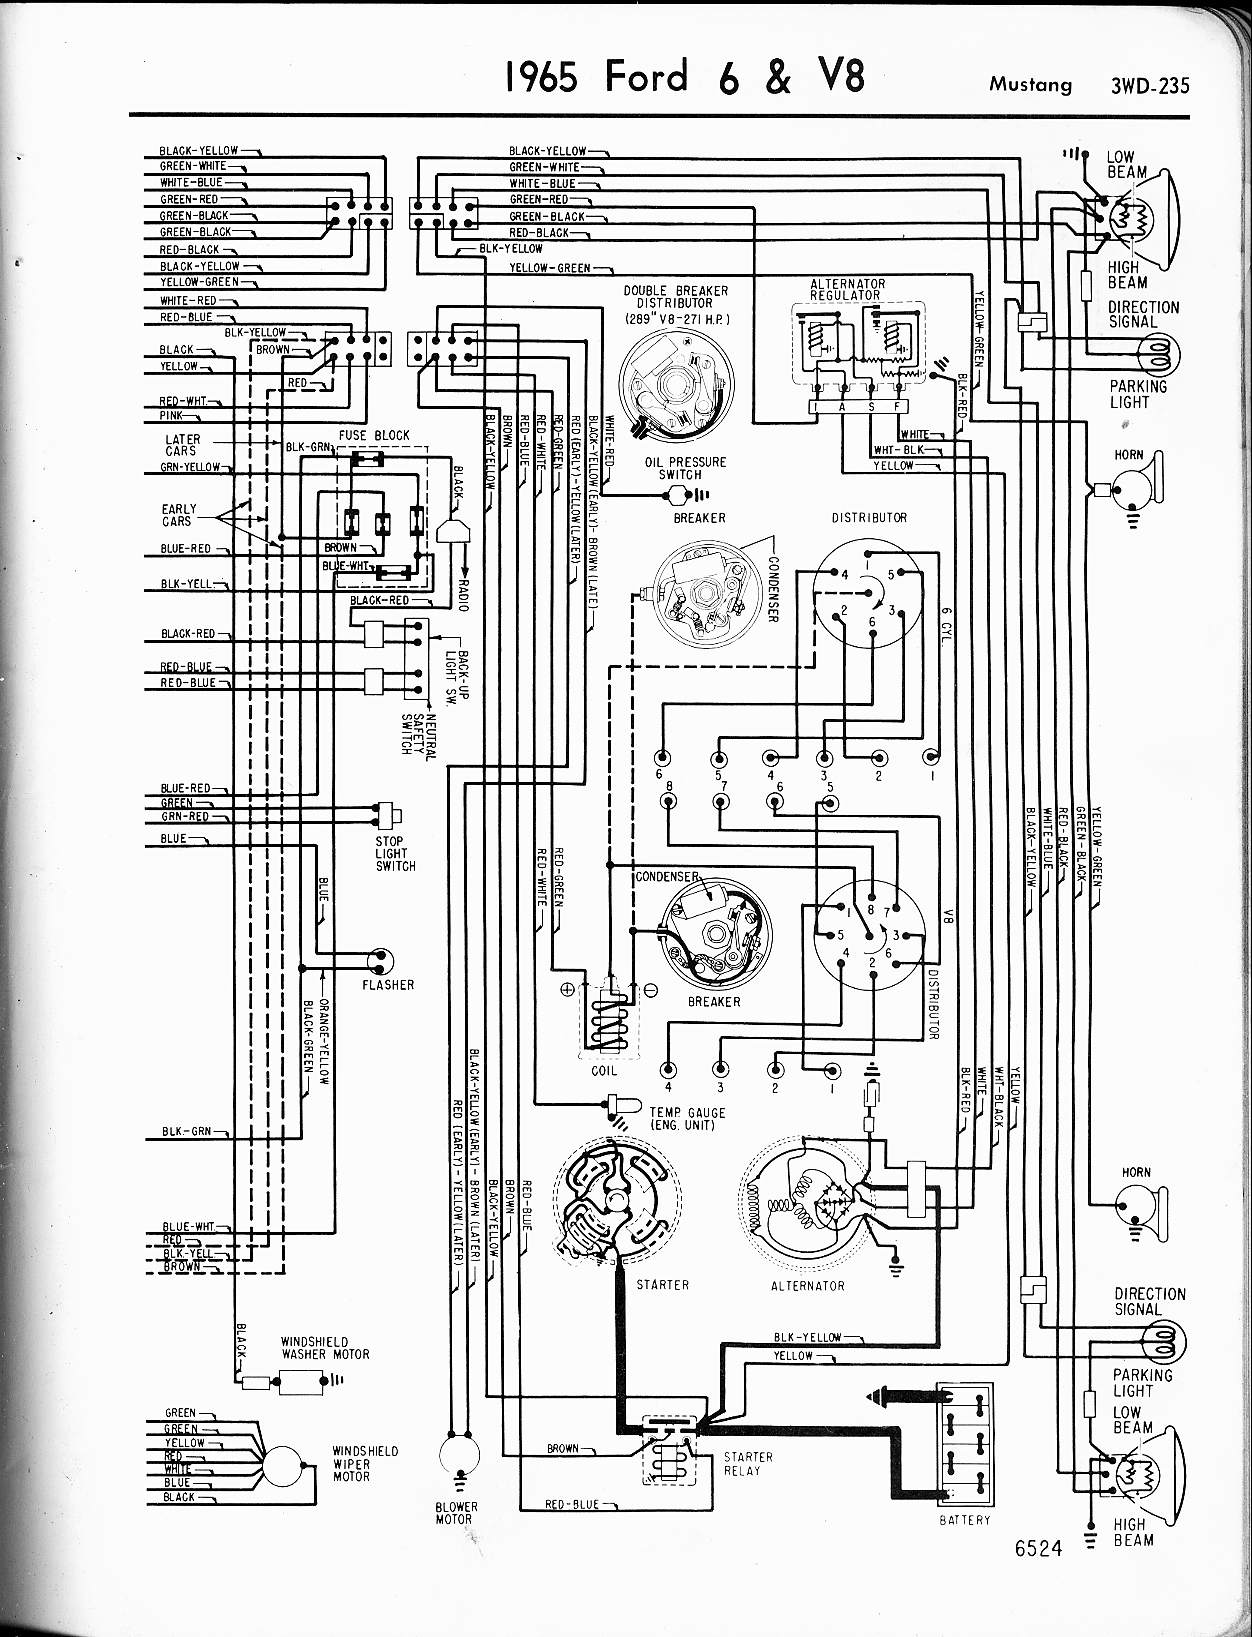 MWire5765 235 mustang wiring harness diagram 2005 2009 mustang wiring harness 1965 ford mustang wiring diagrams at gsmportal.co